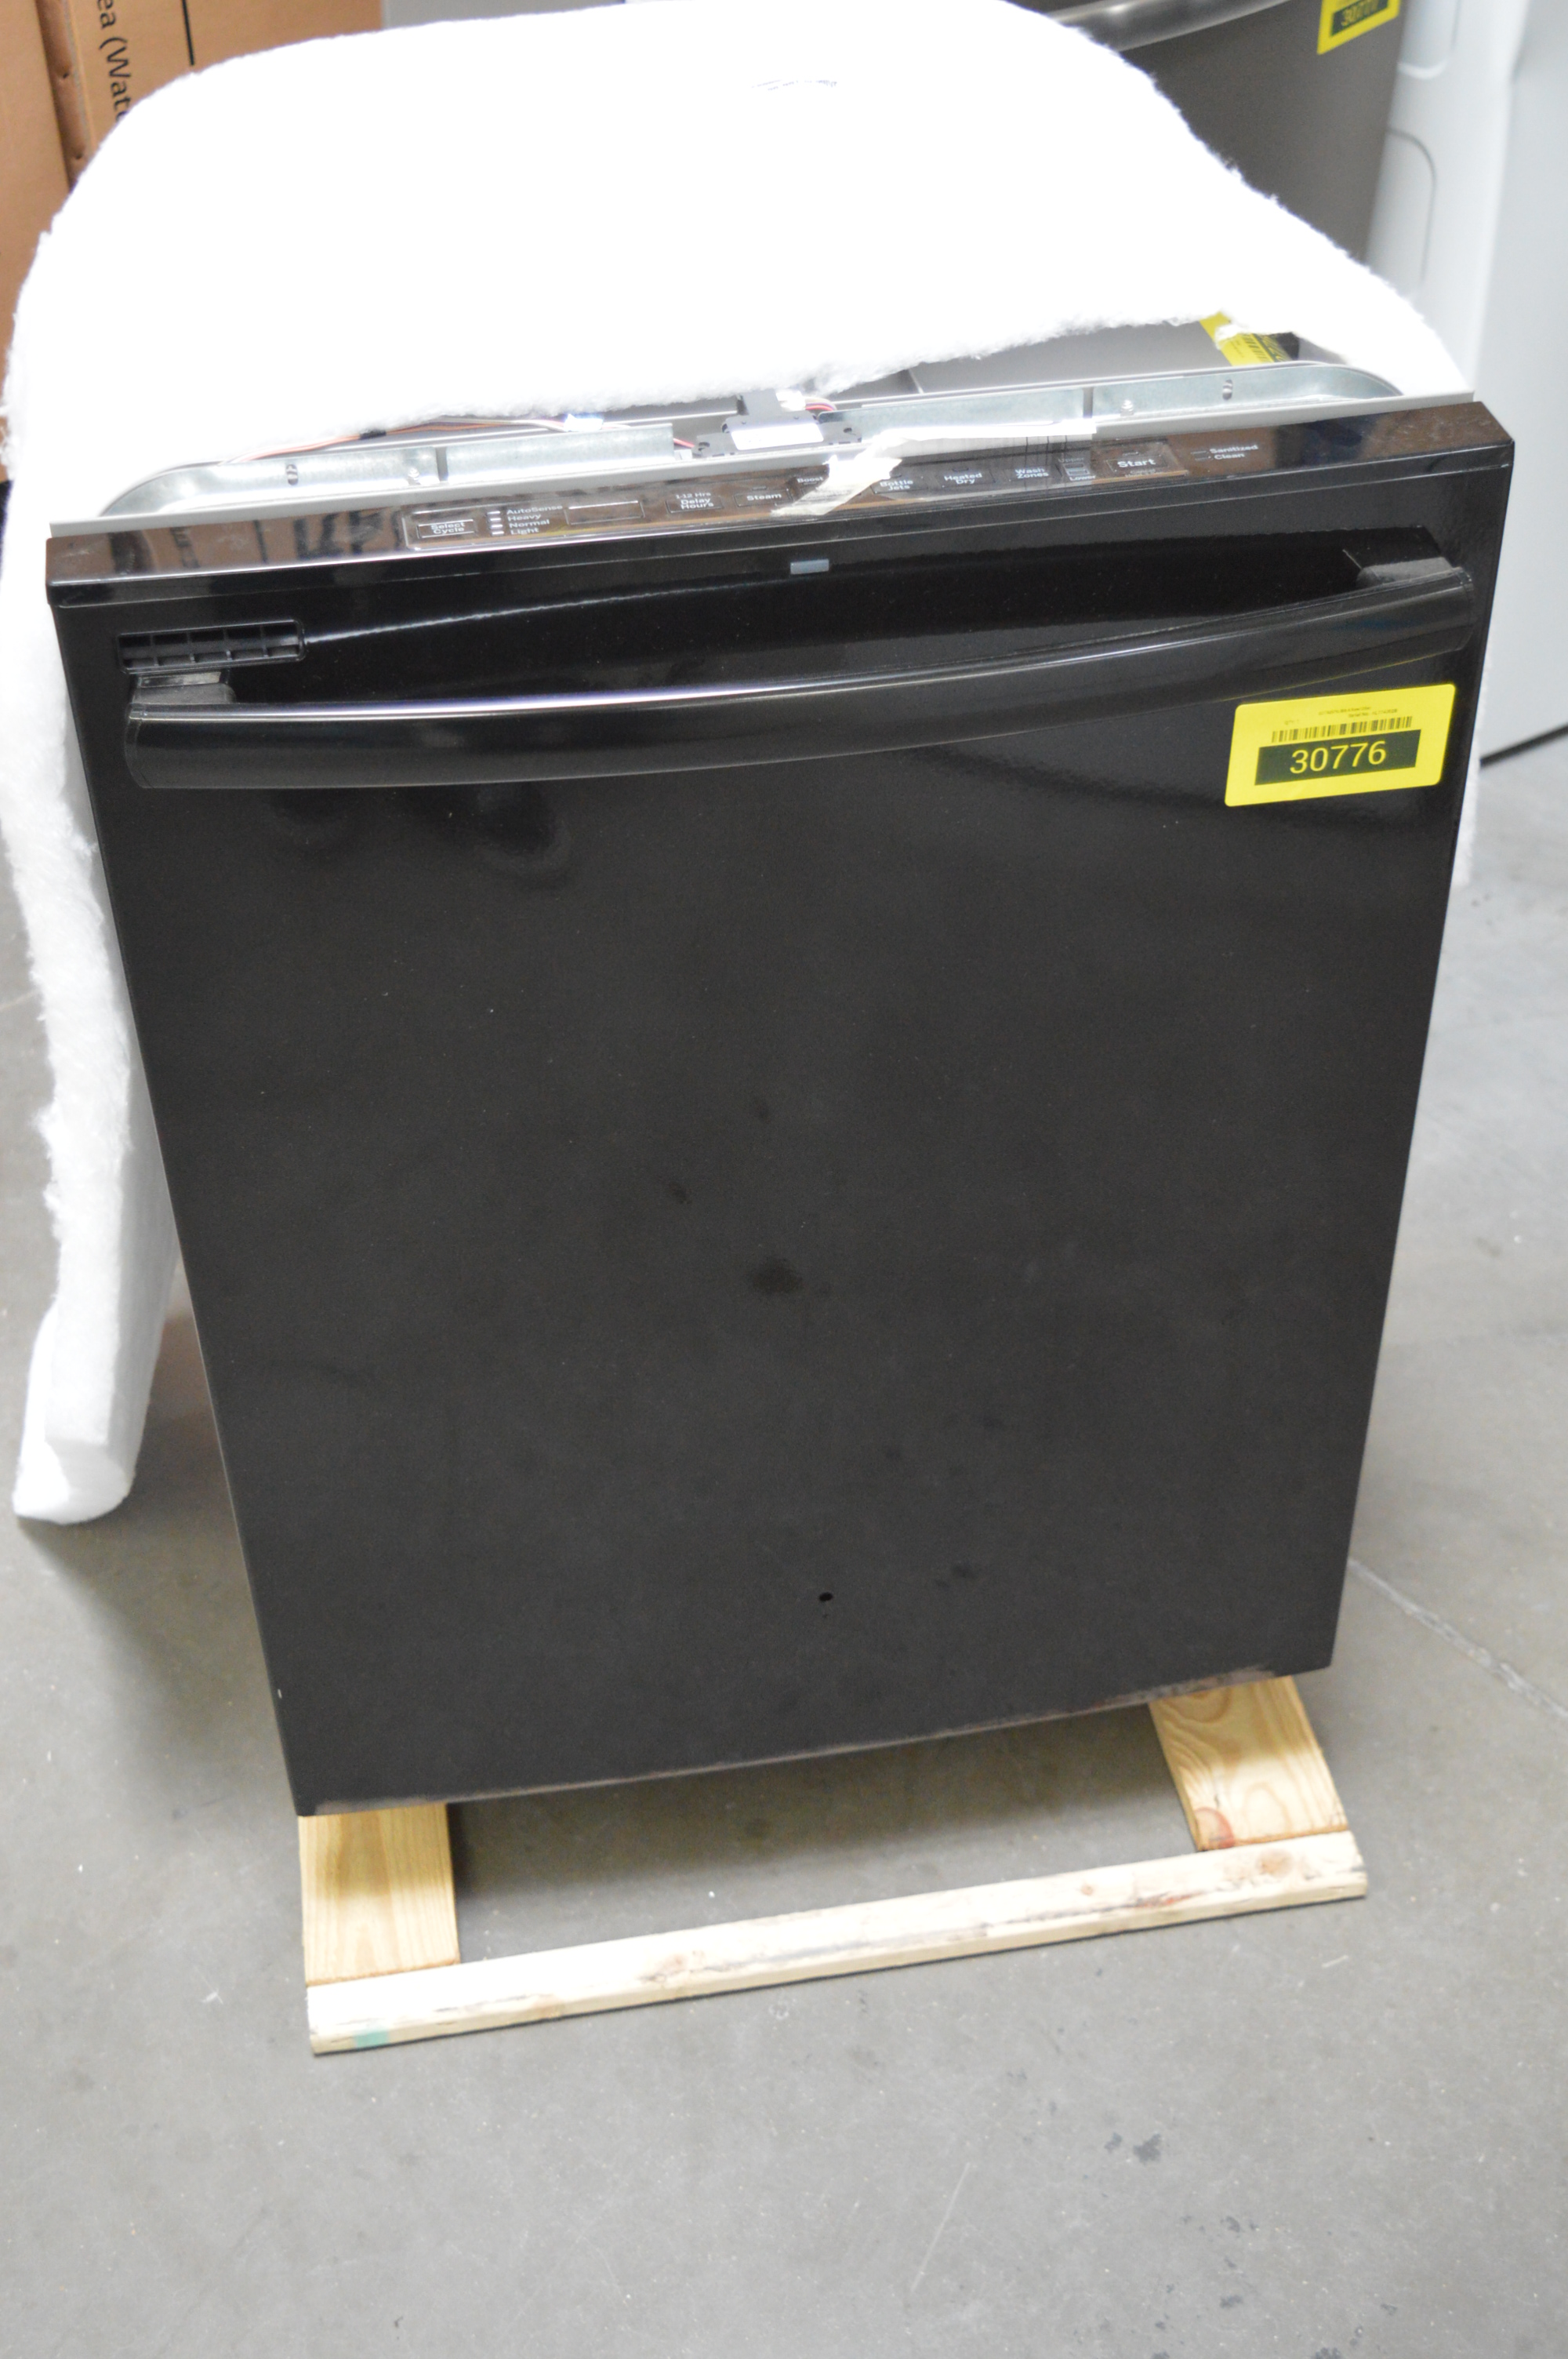 GE GDT625PGJBB Full Console Dishwasher